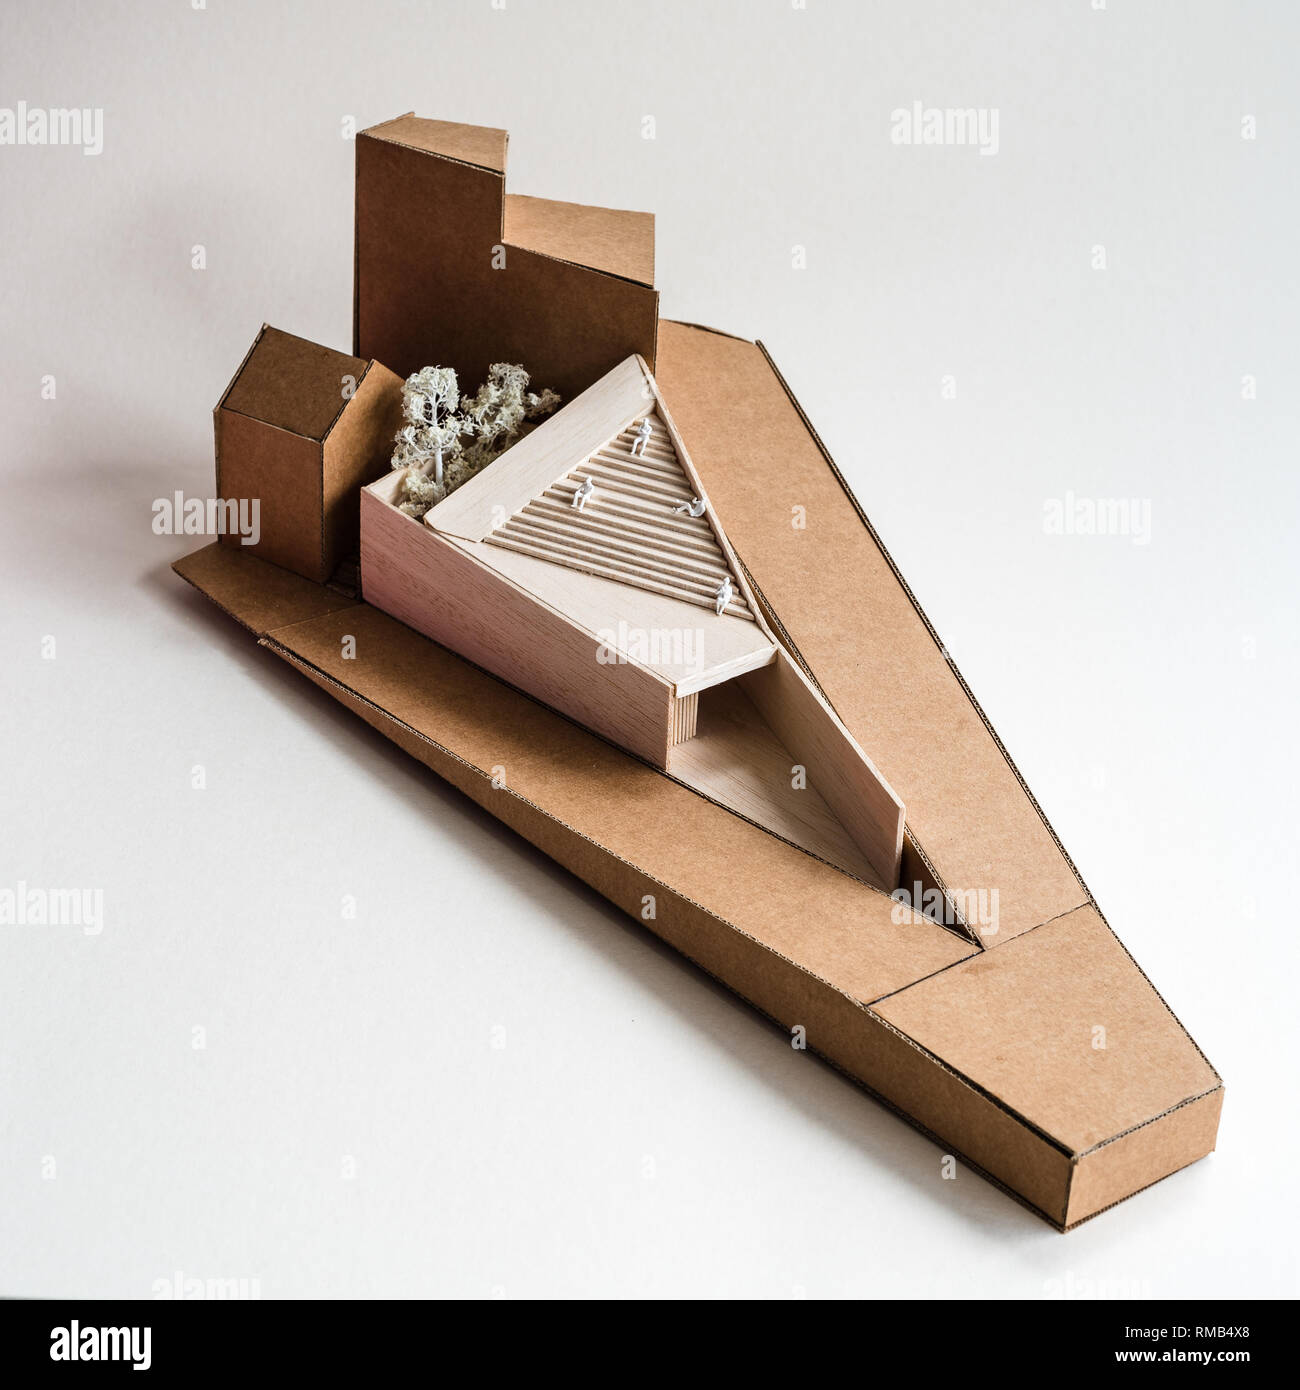 Modern architecture model made with wood and cardboard on white background - Stock Image